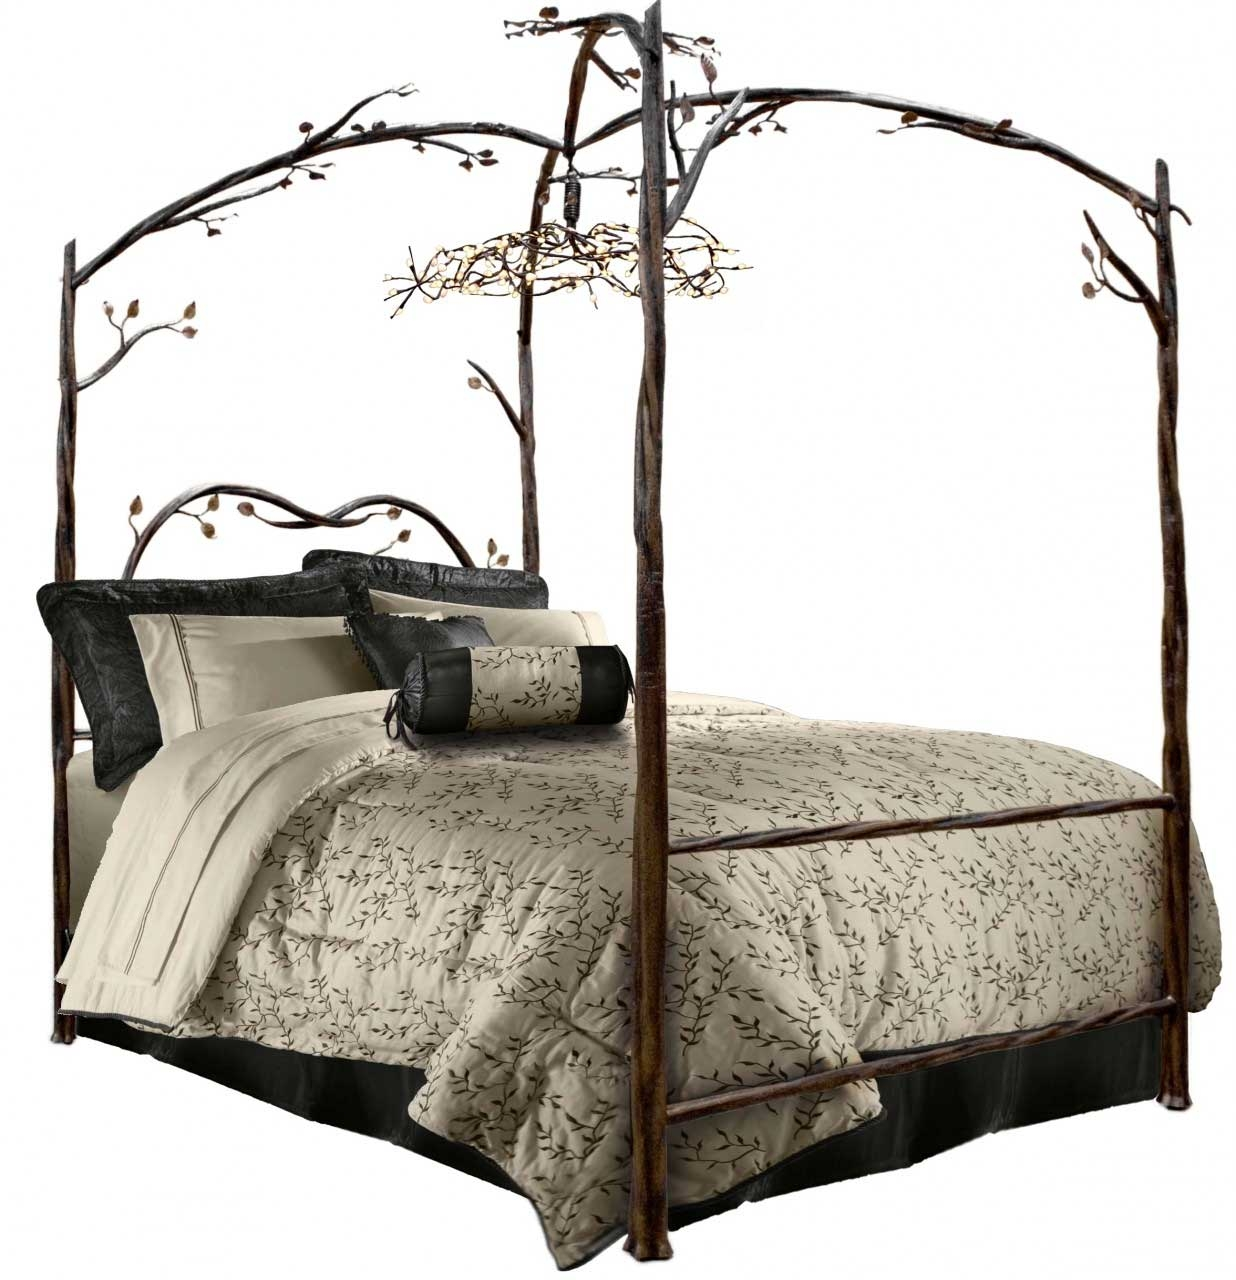 Black Four Post Bed Enjoy The Romantic Bedroom With An Iron Canopy Bed Frame